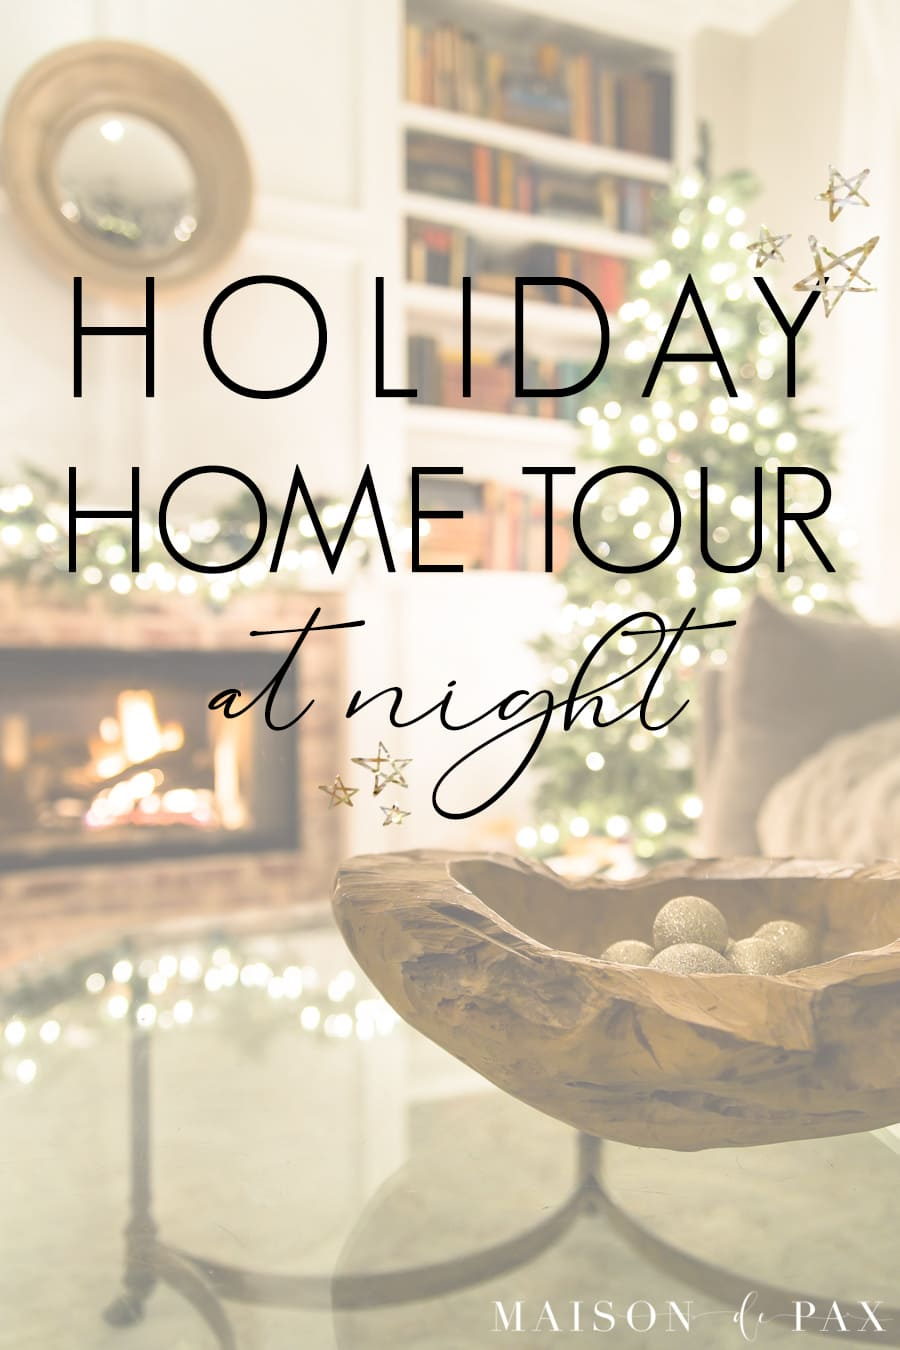 fireplace and christmas tree with overlay: holiday home tour at night | Maison de Pax